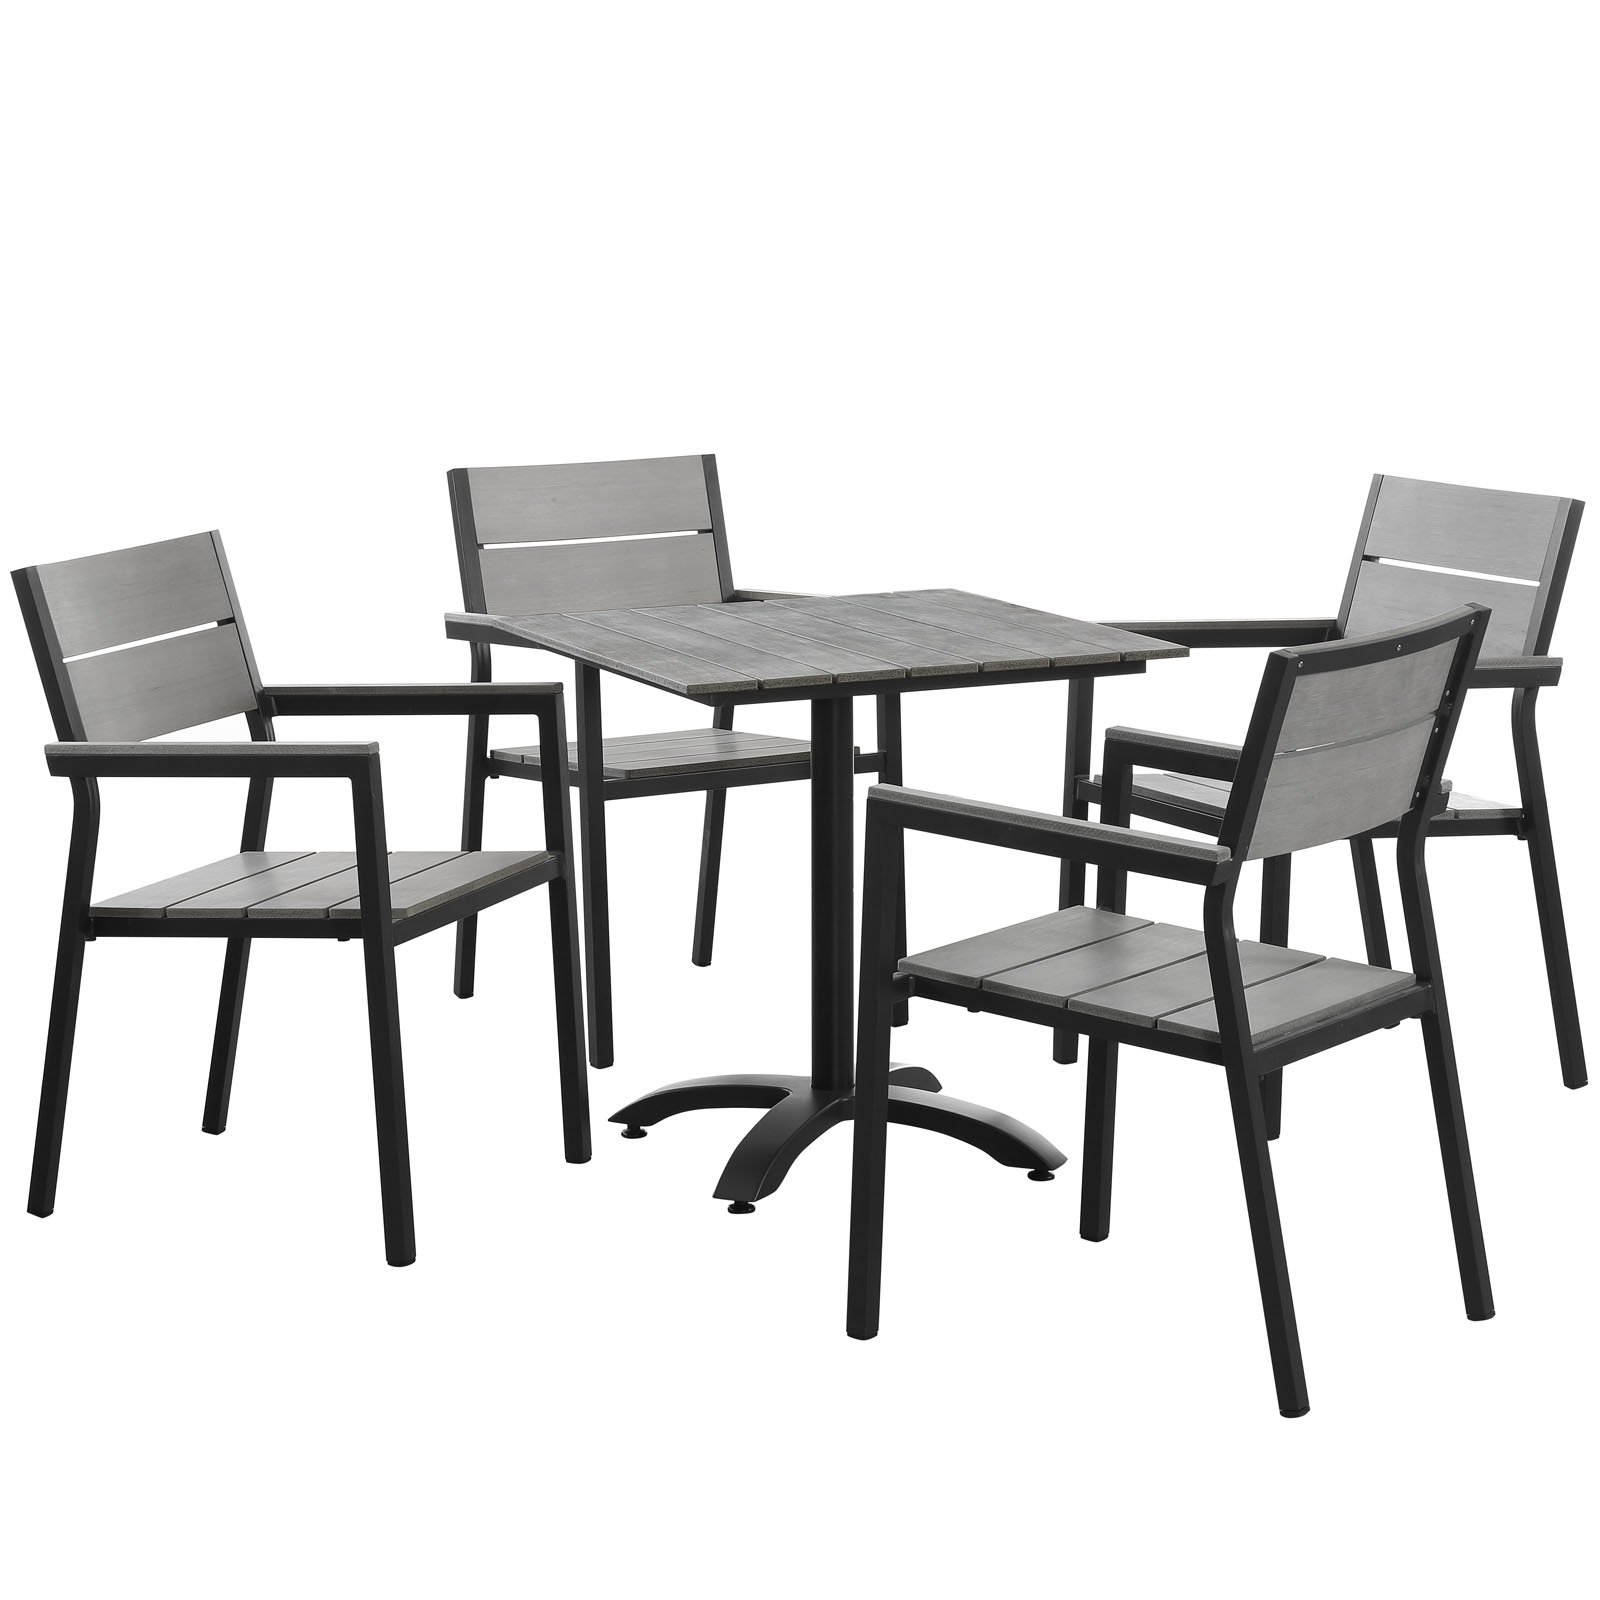 Modern Urban Contemporary 5 pcs Outdoor Patio Dining Room Set, Brown Grey Steel by